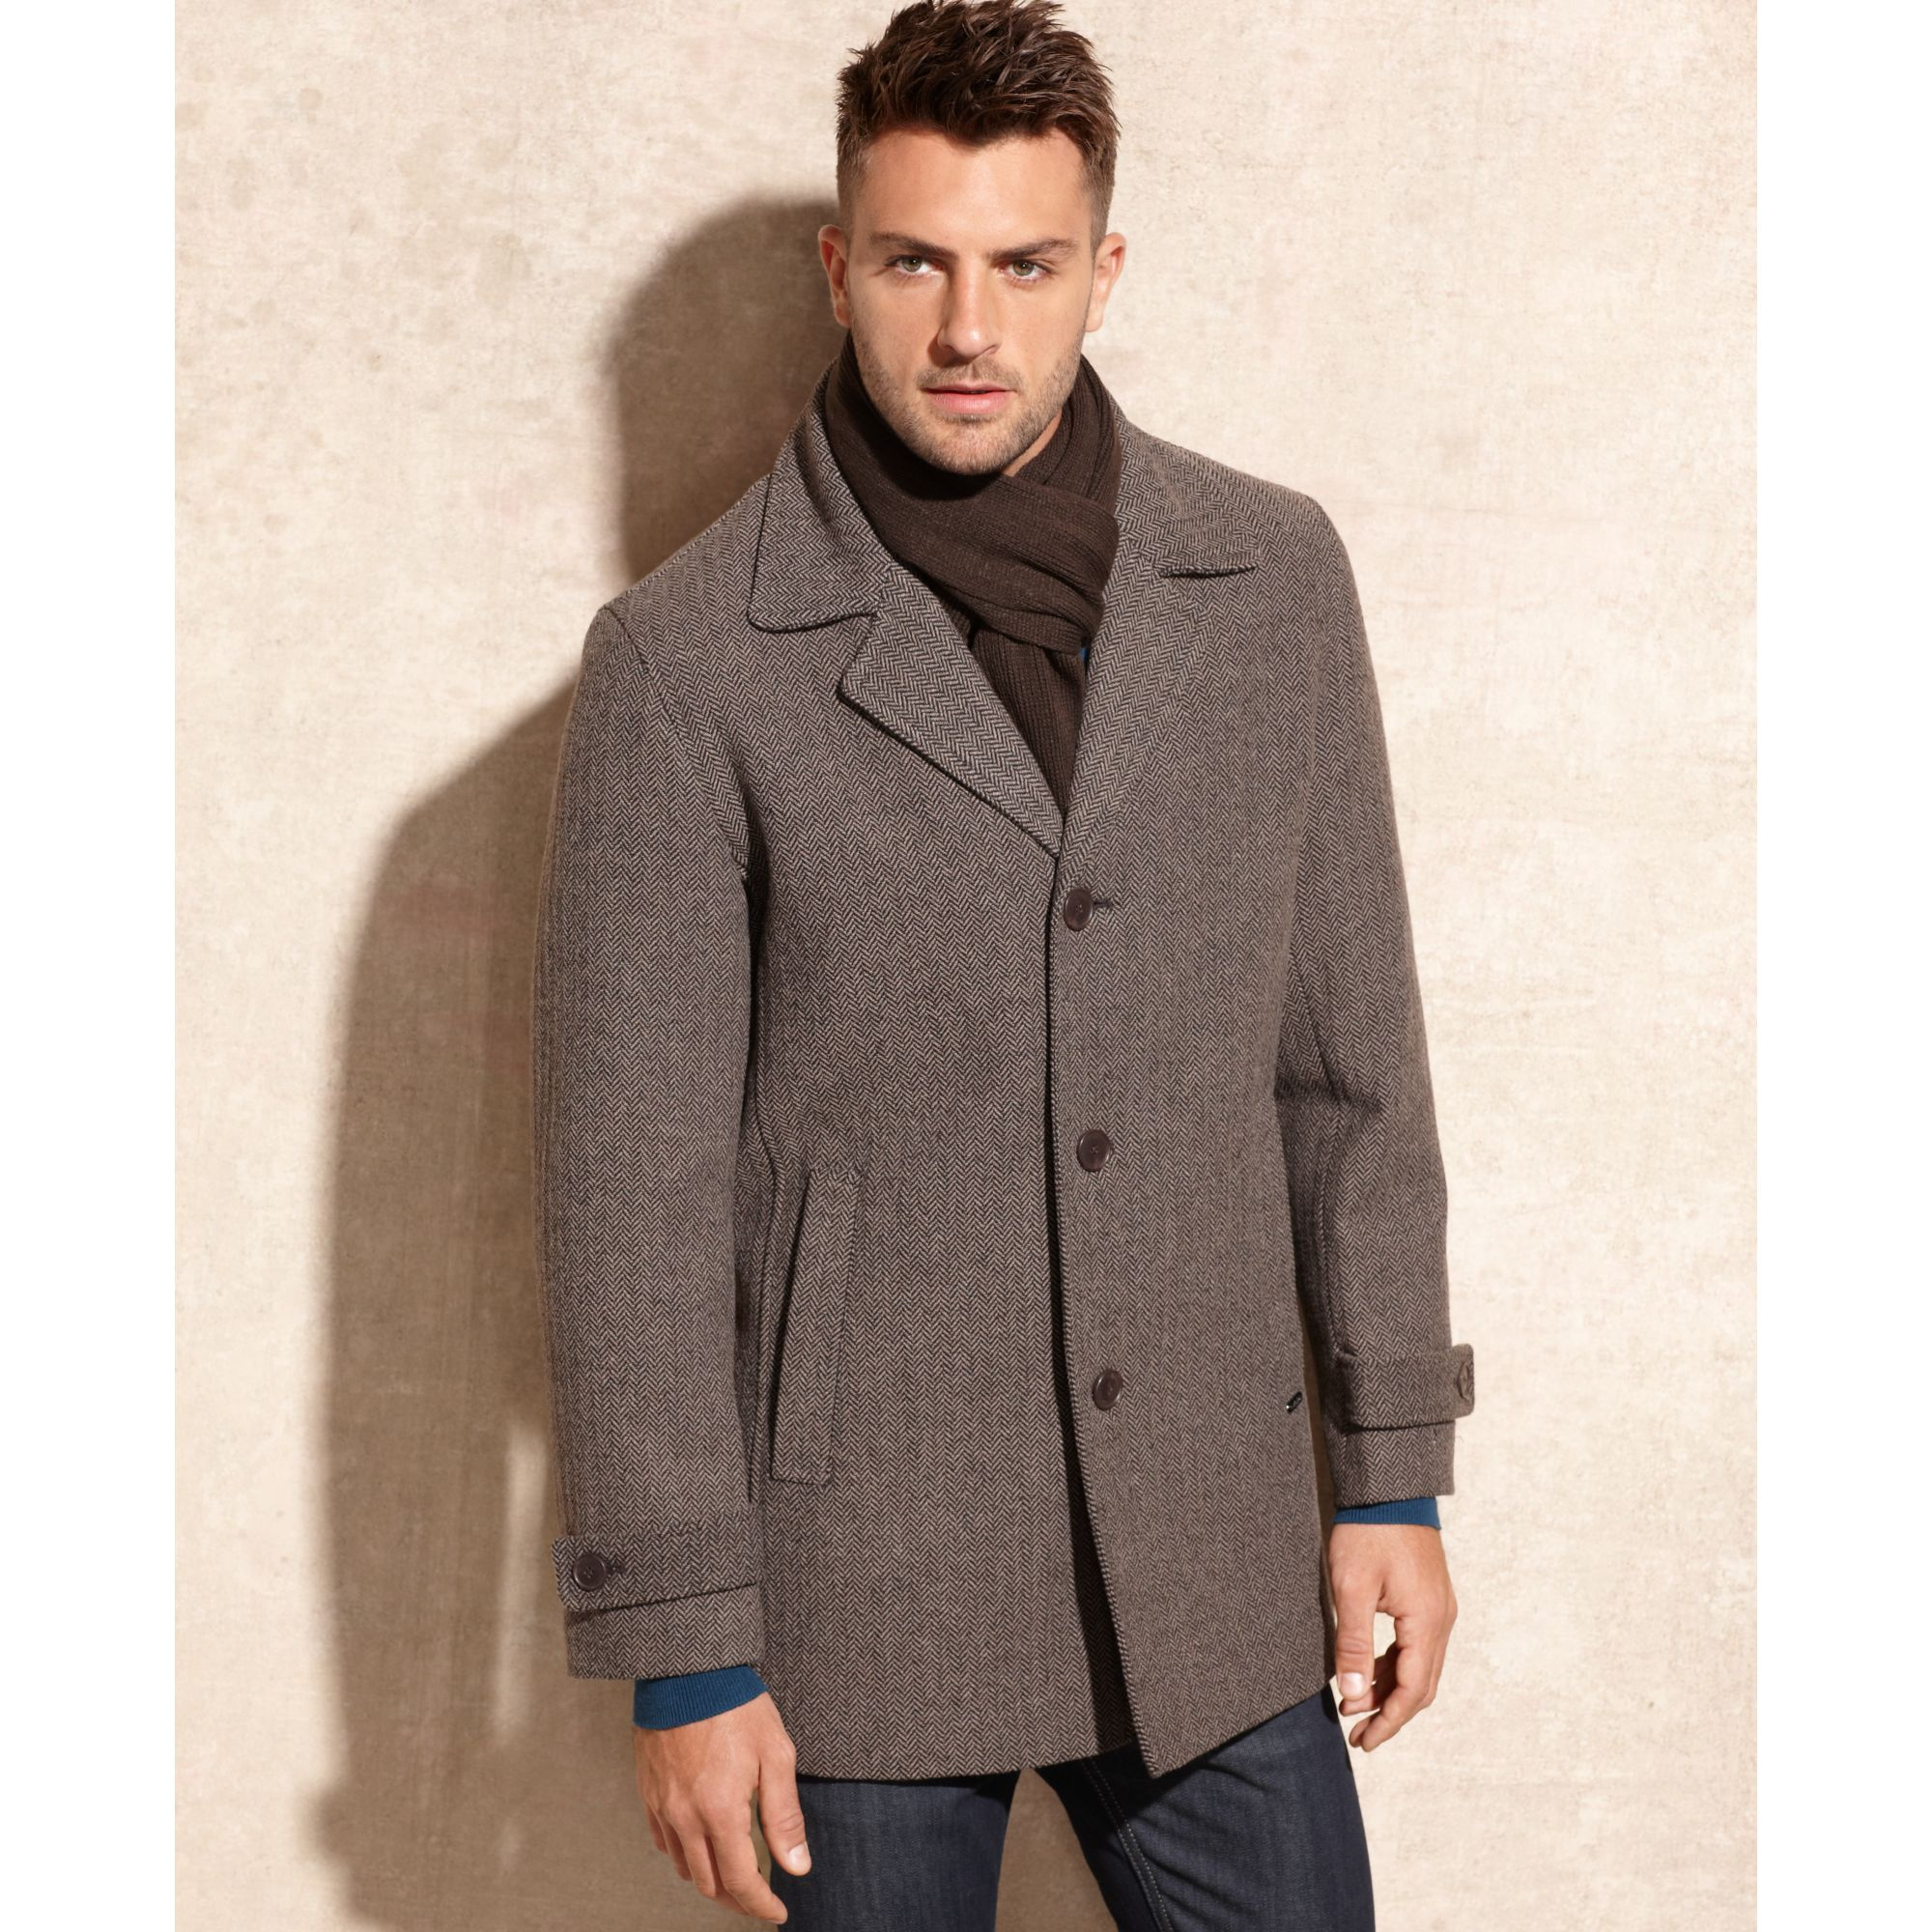 tommy hilfiger wool blend walking coat – Maskbook